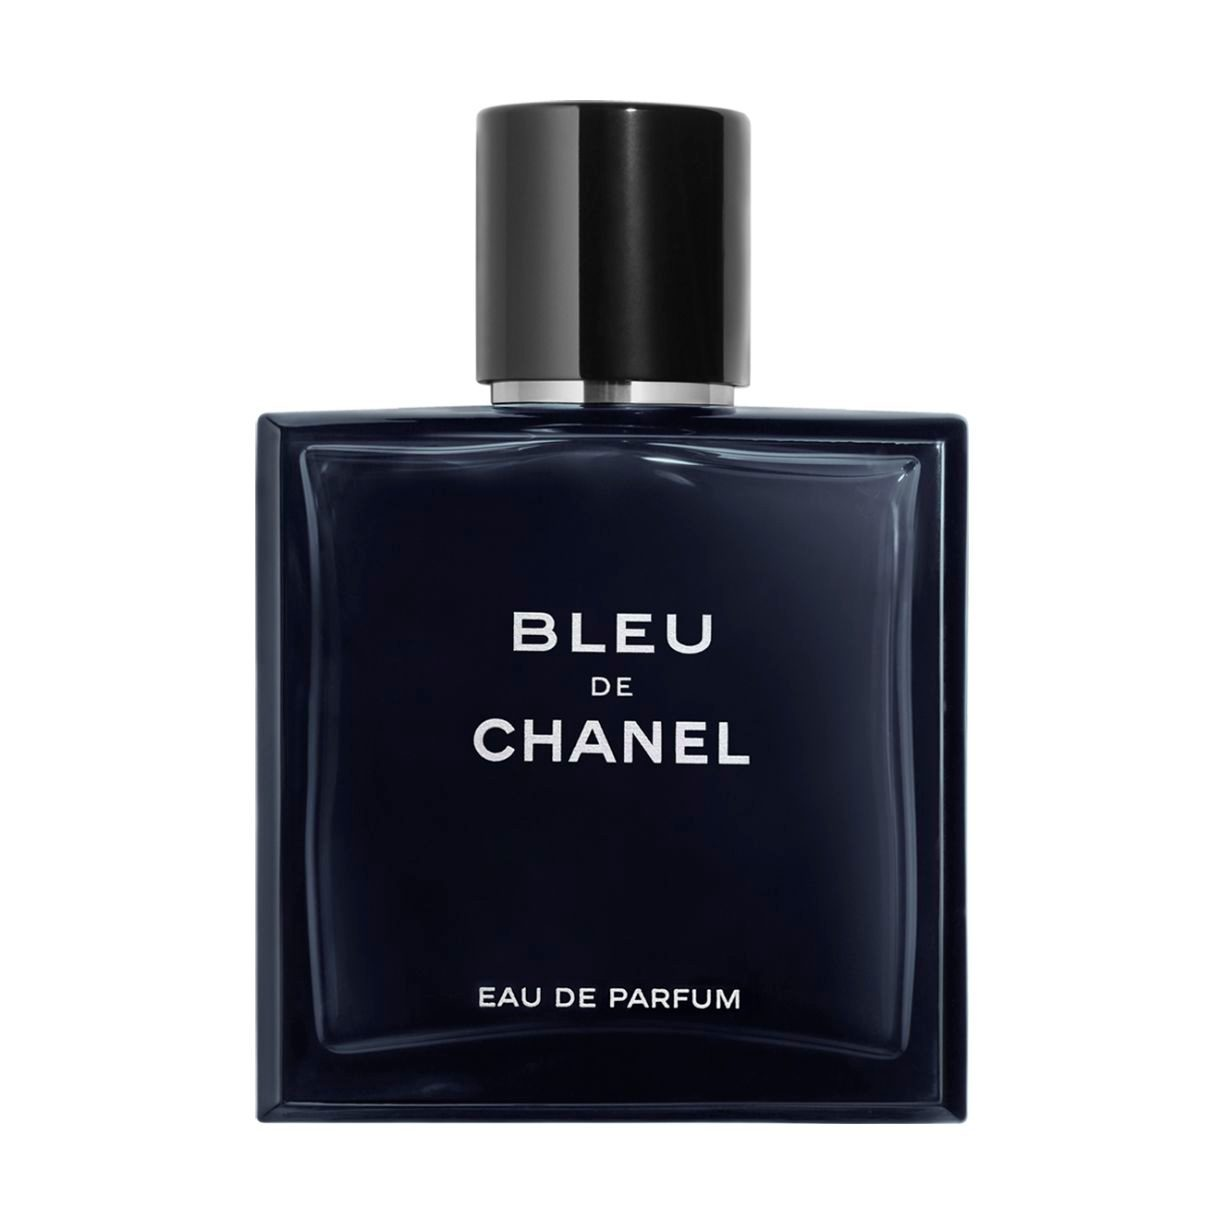 BLEU DE CHANEL EAU DE PARFUM SPRAY 50ML